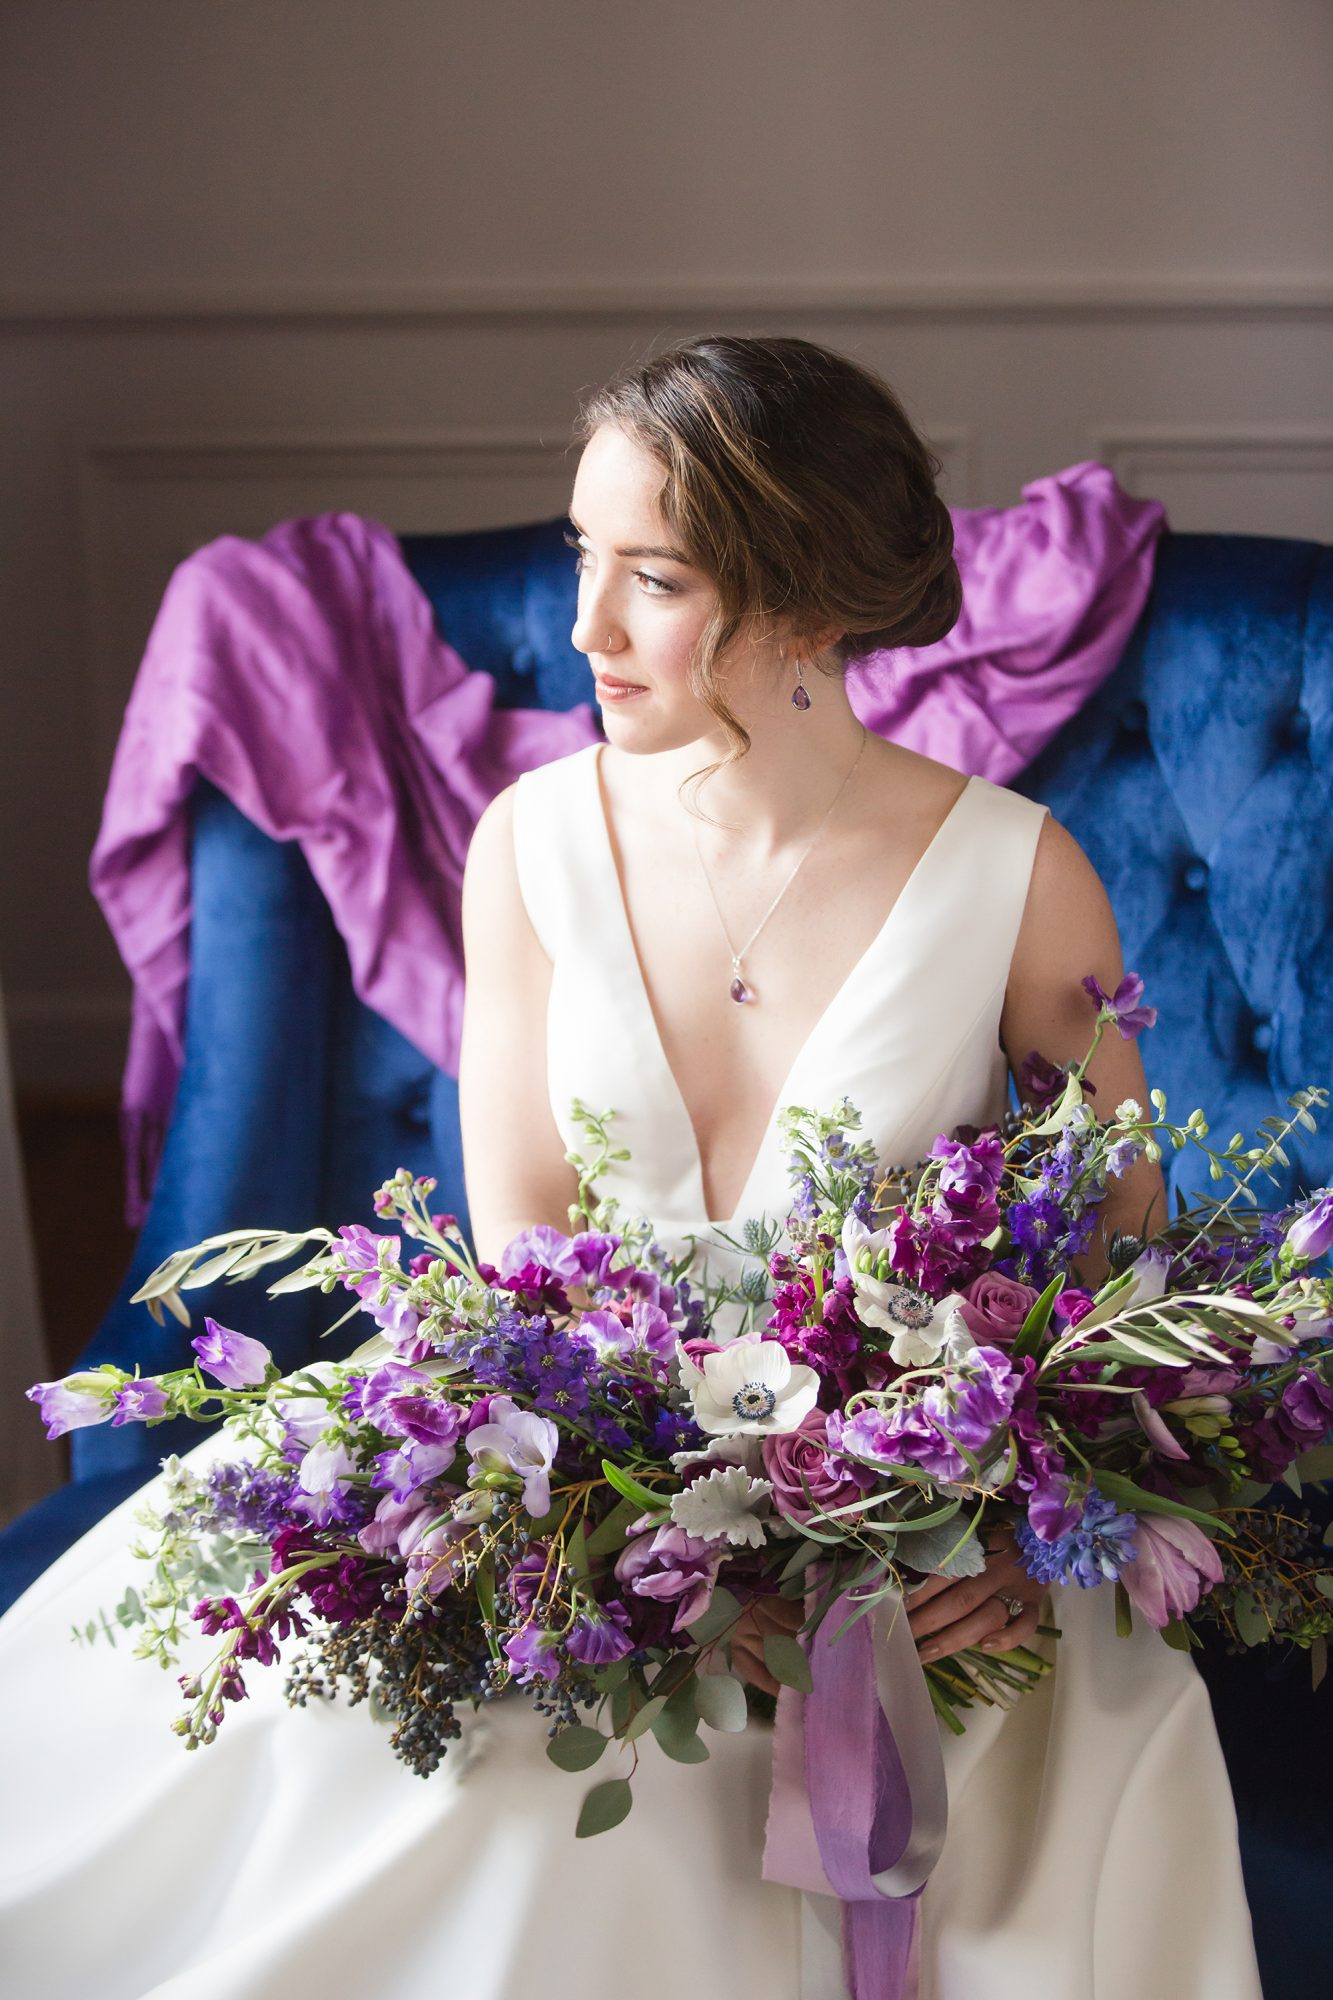 ideas to choose the beauty and elegance of white and purple wedding flowers 5 - Ideas to Choose the Beauty and Elegance of White and Purple Wedding Flowers